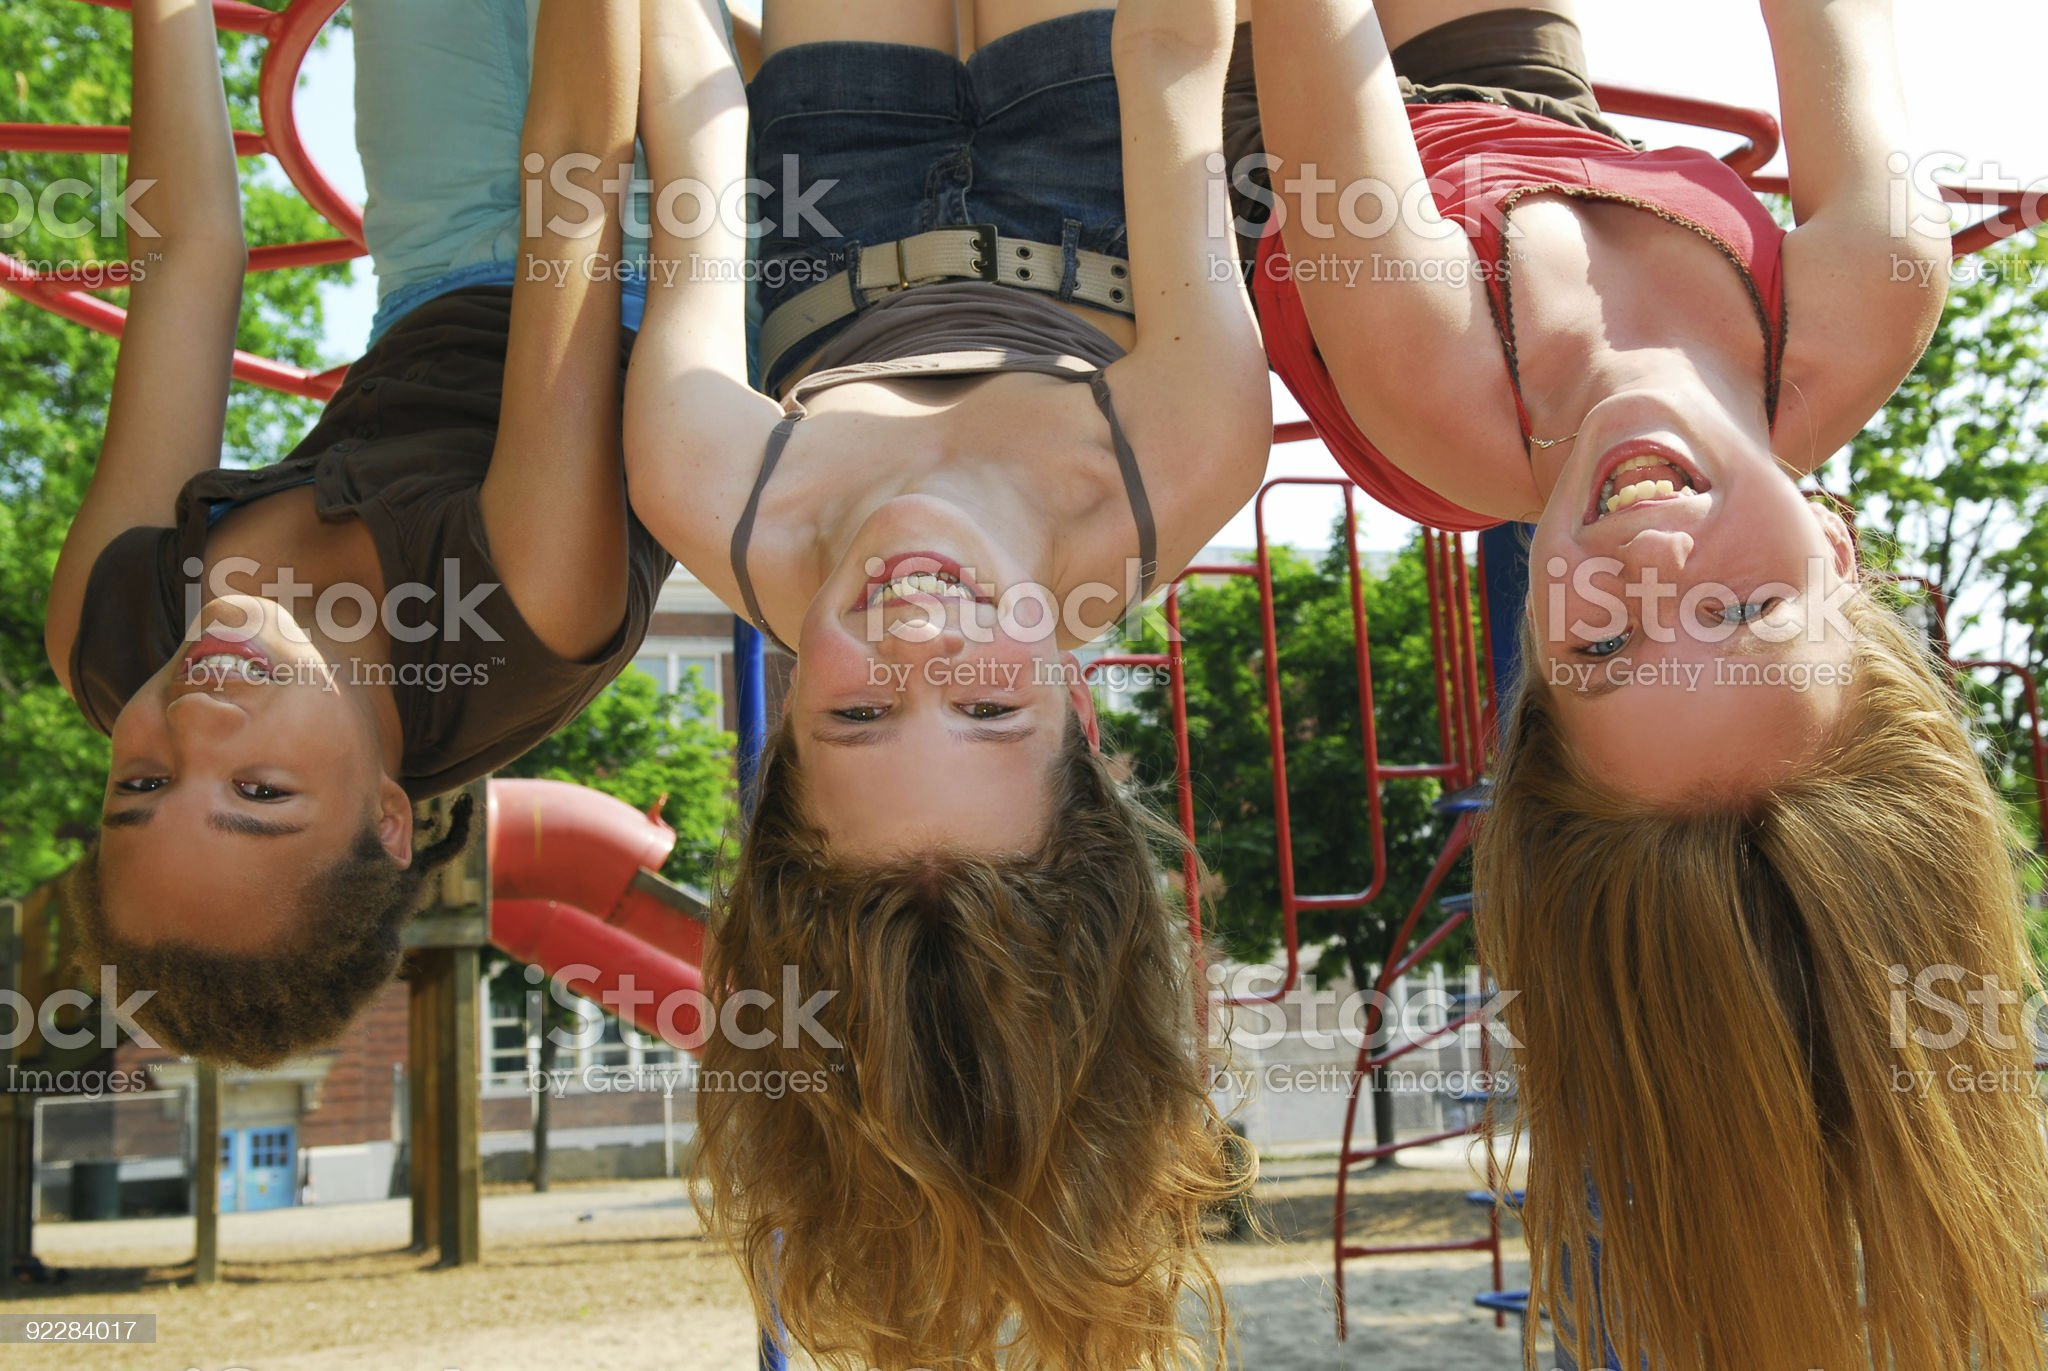 Girls in a park royalty-free stock photo